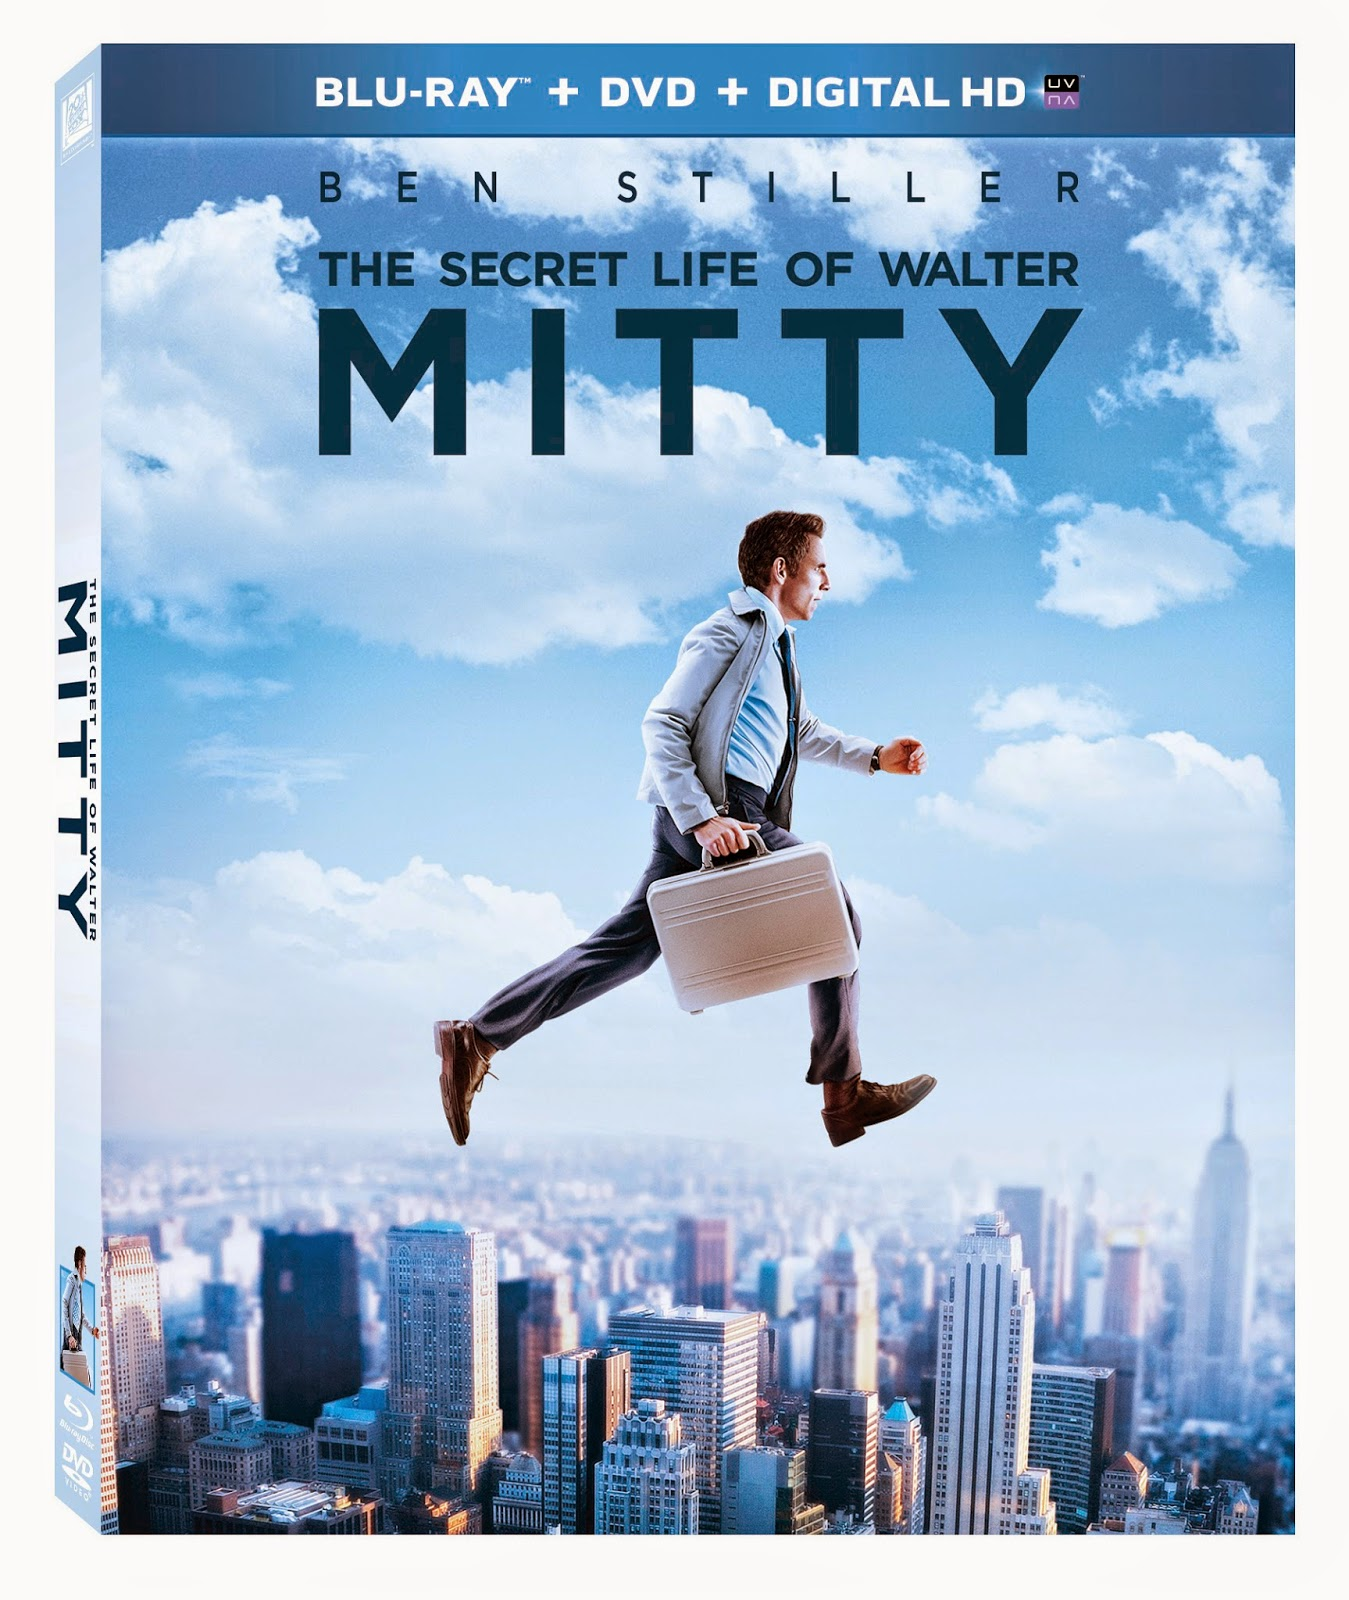 Blu-ray Review - The Secret Life of Walter Mitty